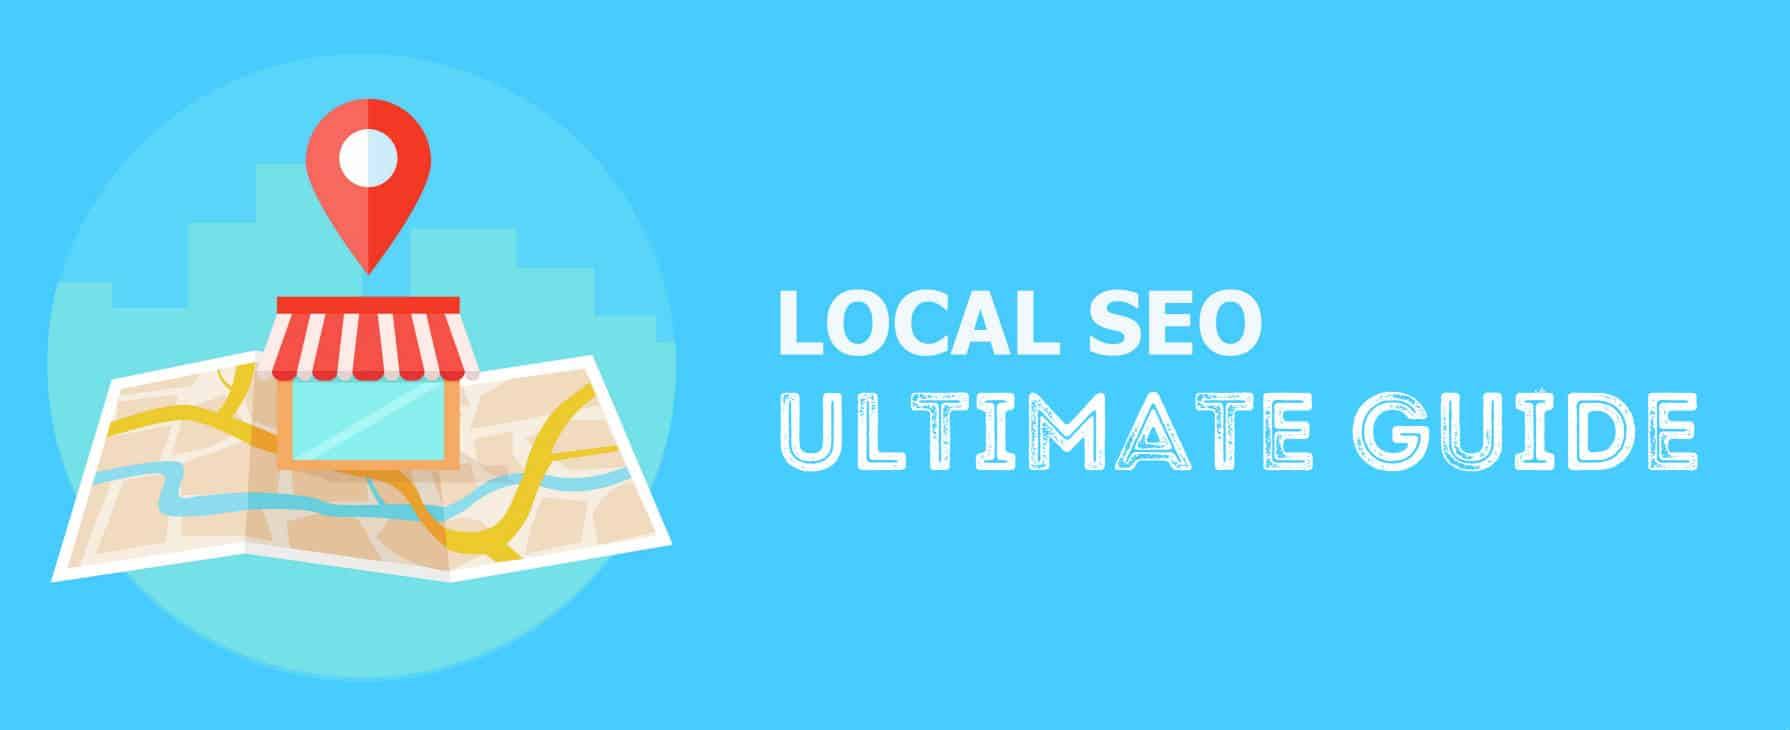 Local SEO Ultimate Guide